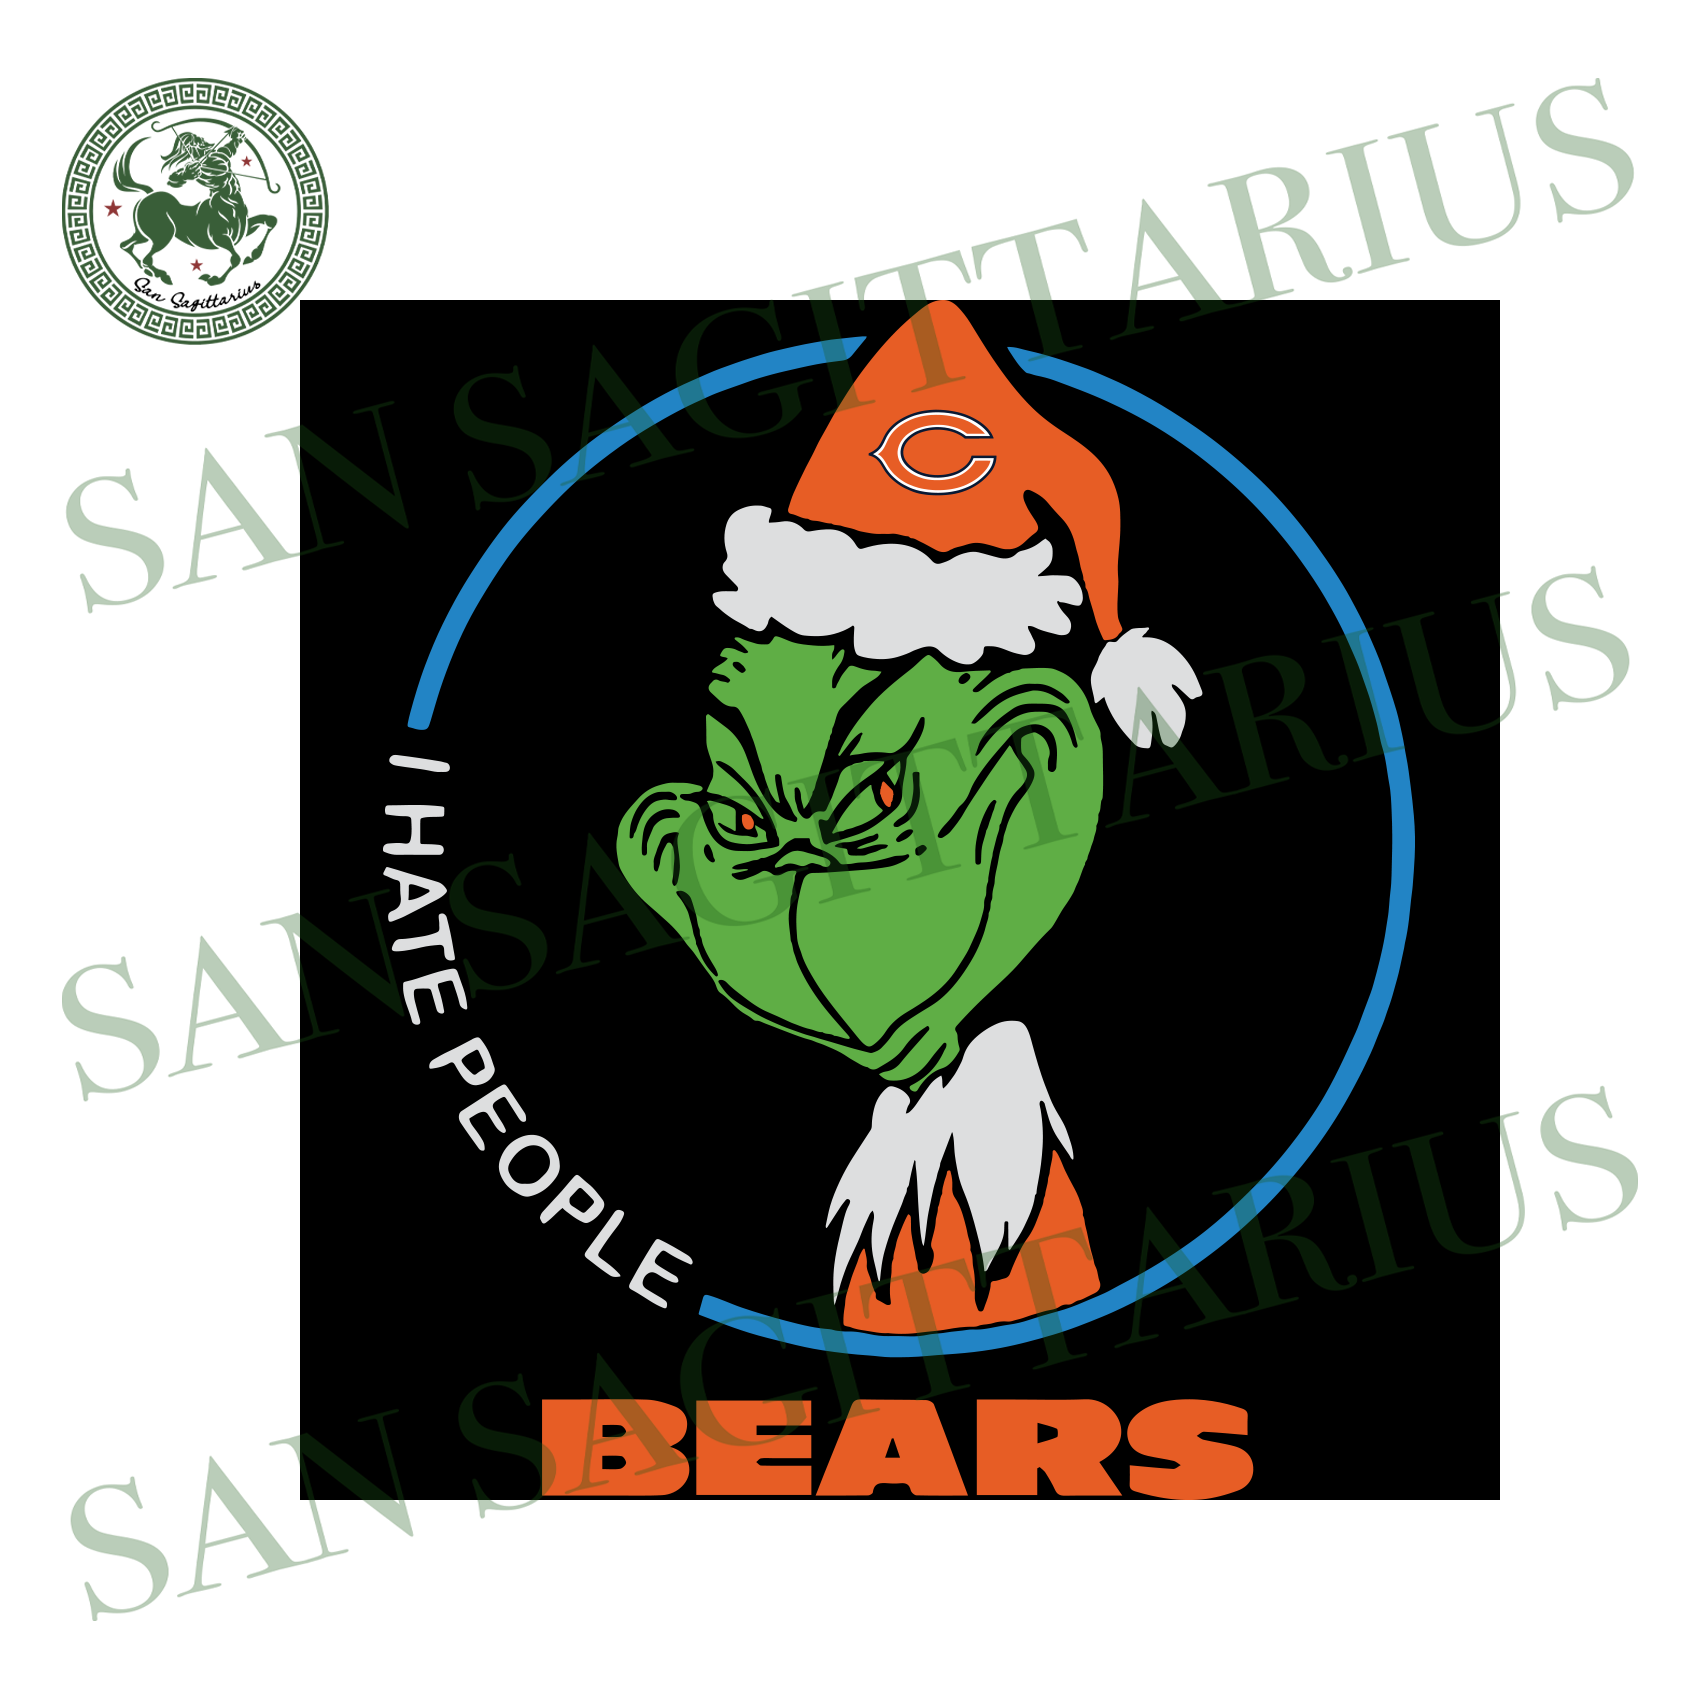 Chicago Bears Logo With Grinch, Sport Svg, NFL Football Svg, NFL Svg, NFL Sport, Chicago Bears Svg, Chicago Bears, Chicago Bears NFL Lover, Chicago Bears NFL Svg, Football Svg, Football Lover